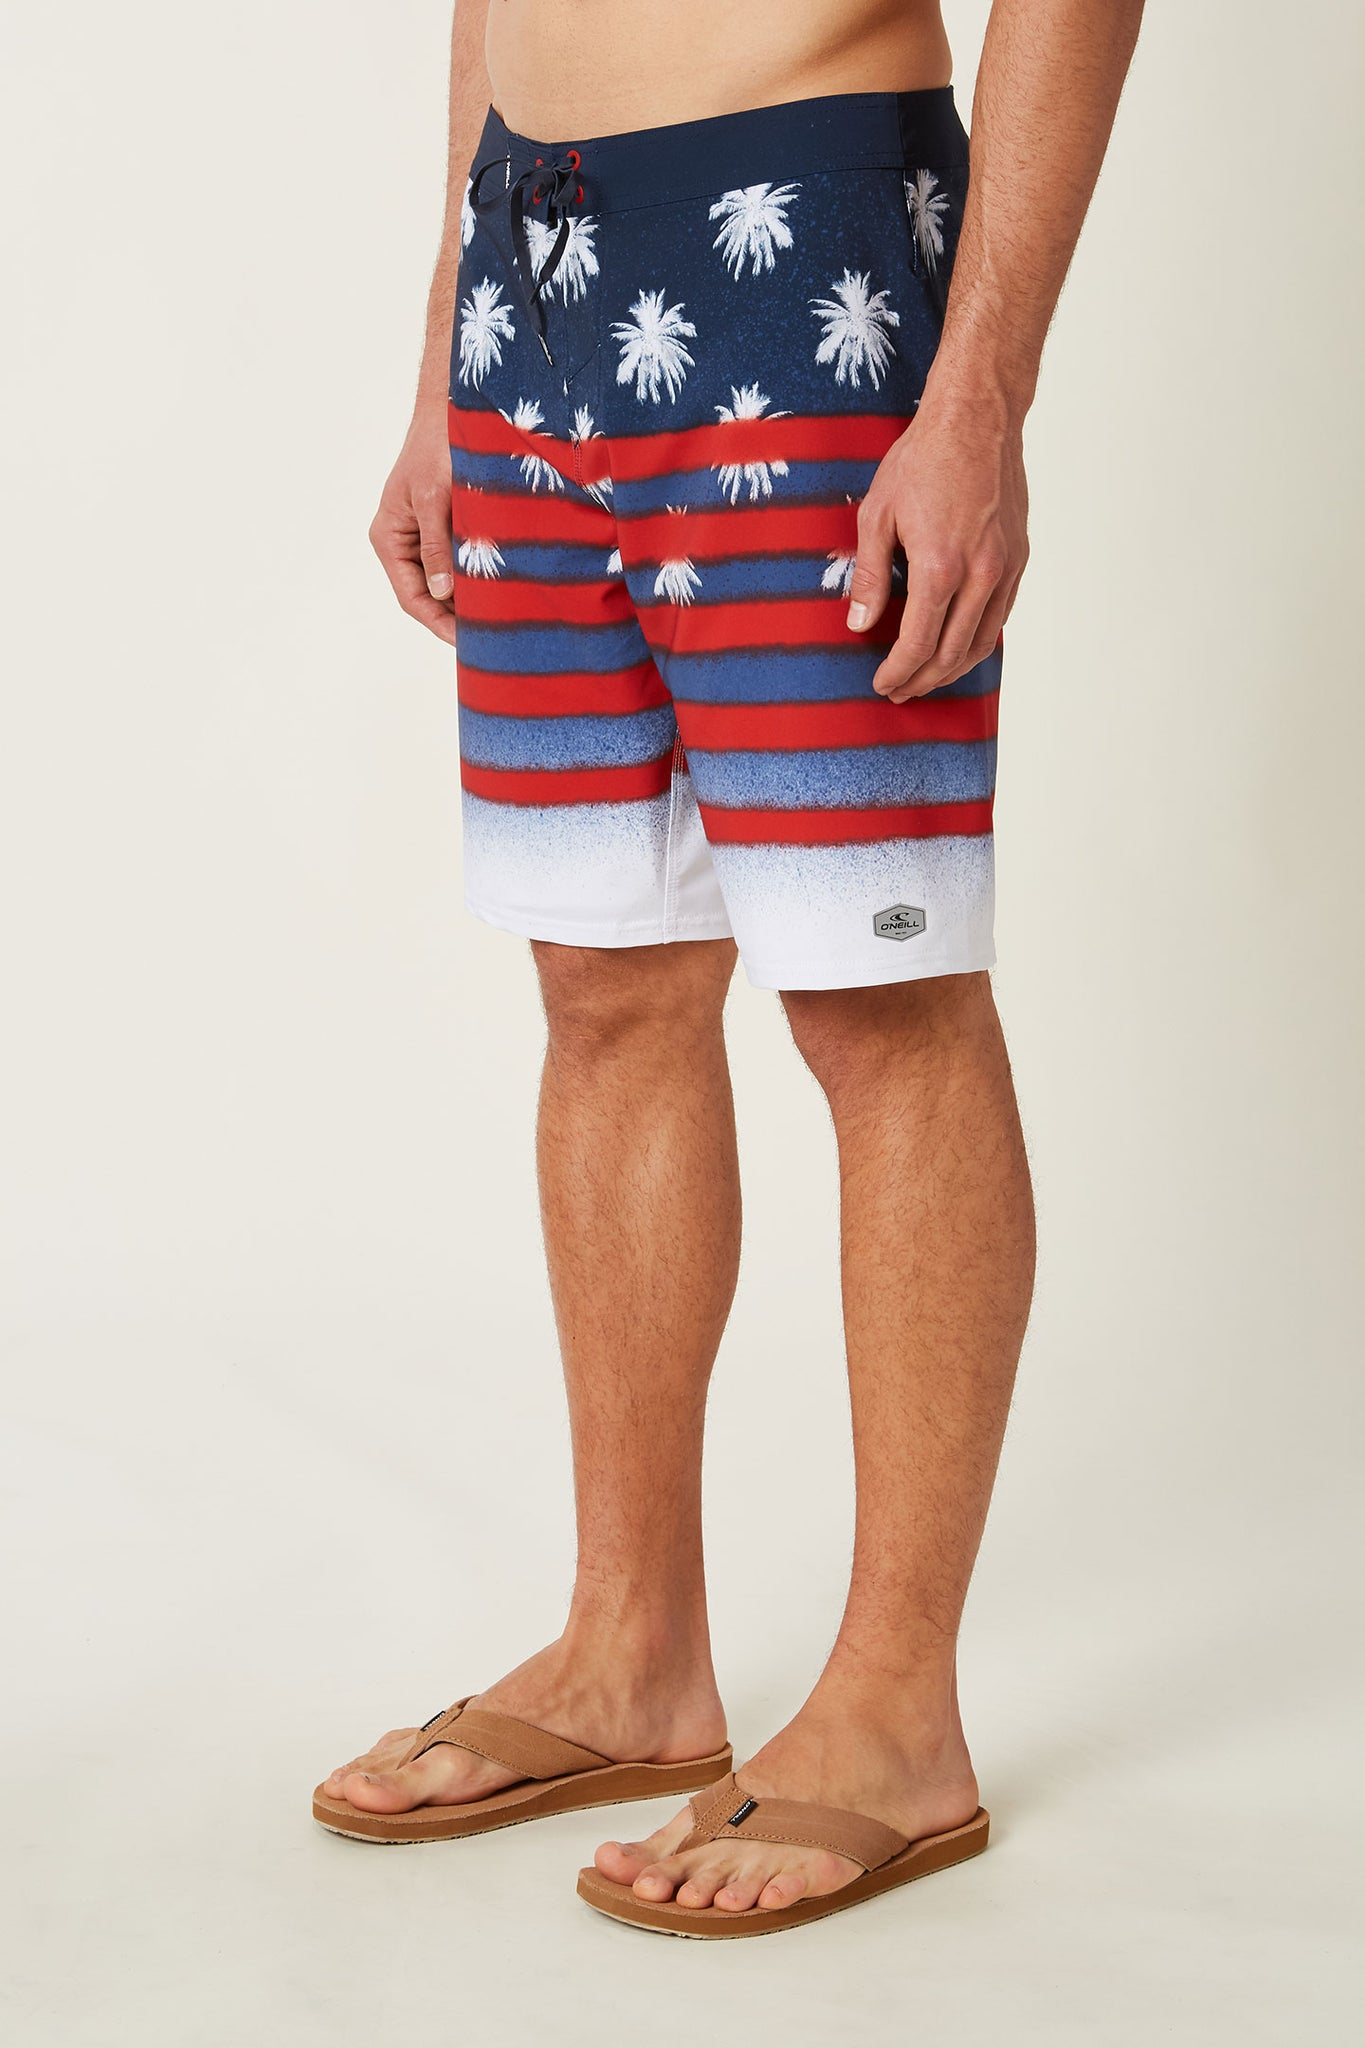 Hyperfreak Sarfin Usa Boardshorts - Red White Blue | O'Neill